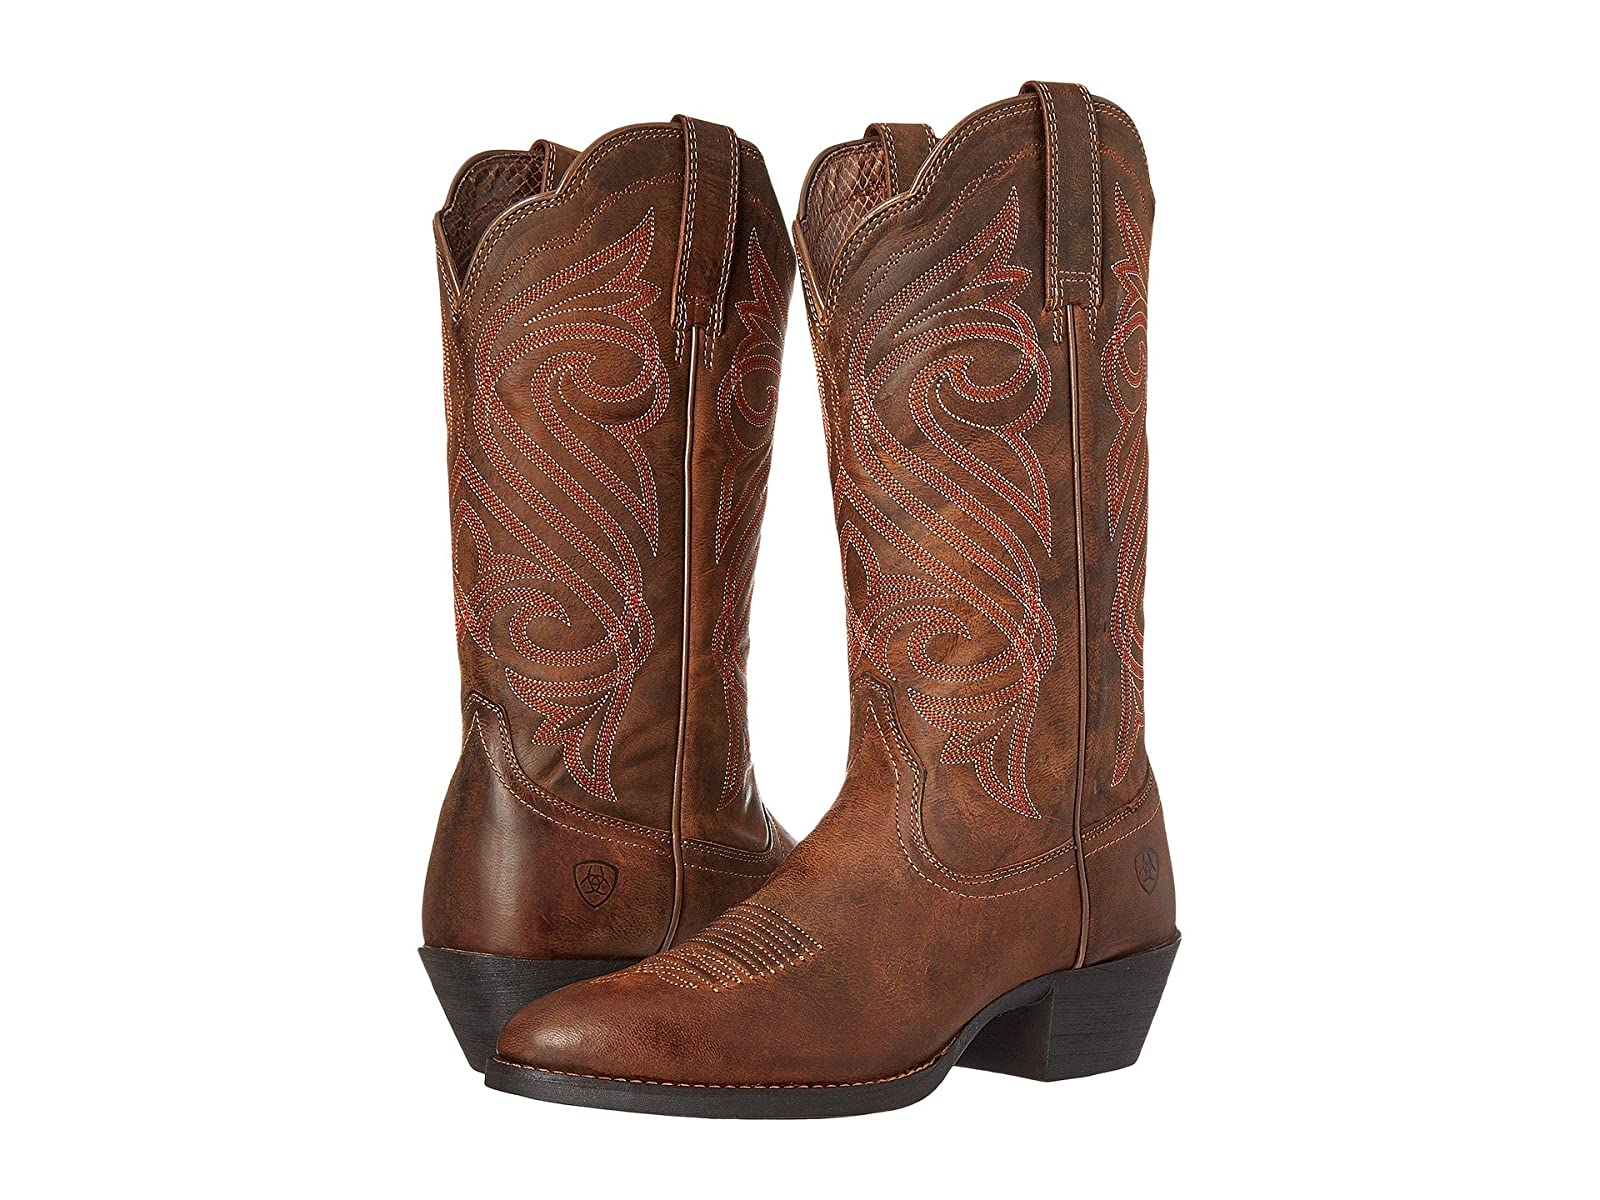 Ariat Round Up R ToeSelling fashionable and eye-catching shoes